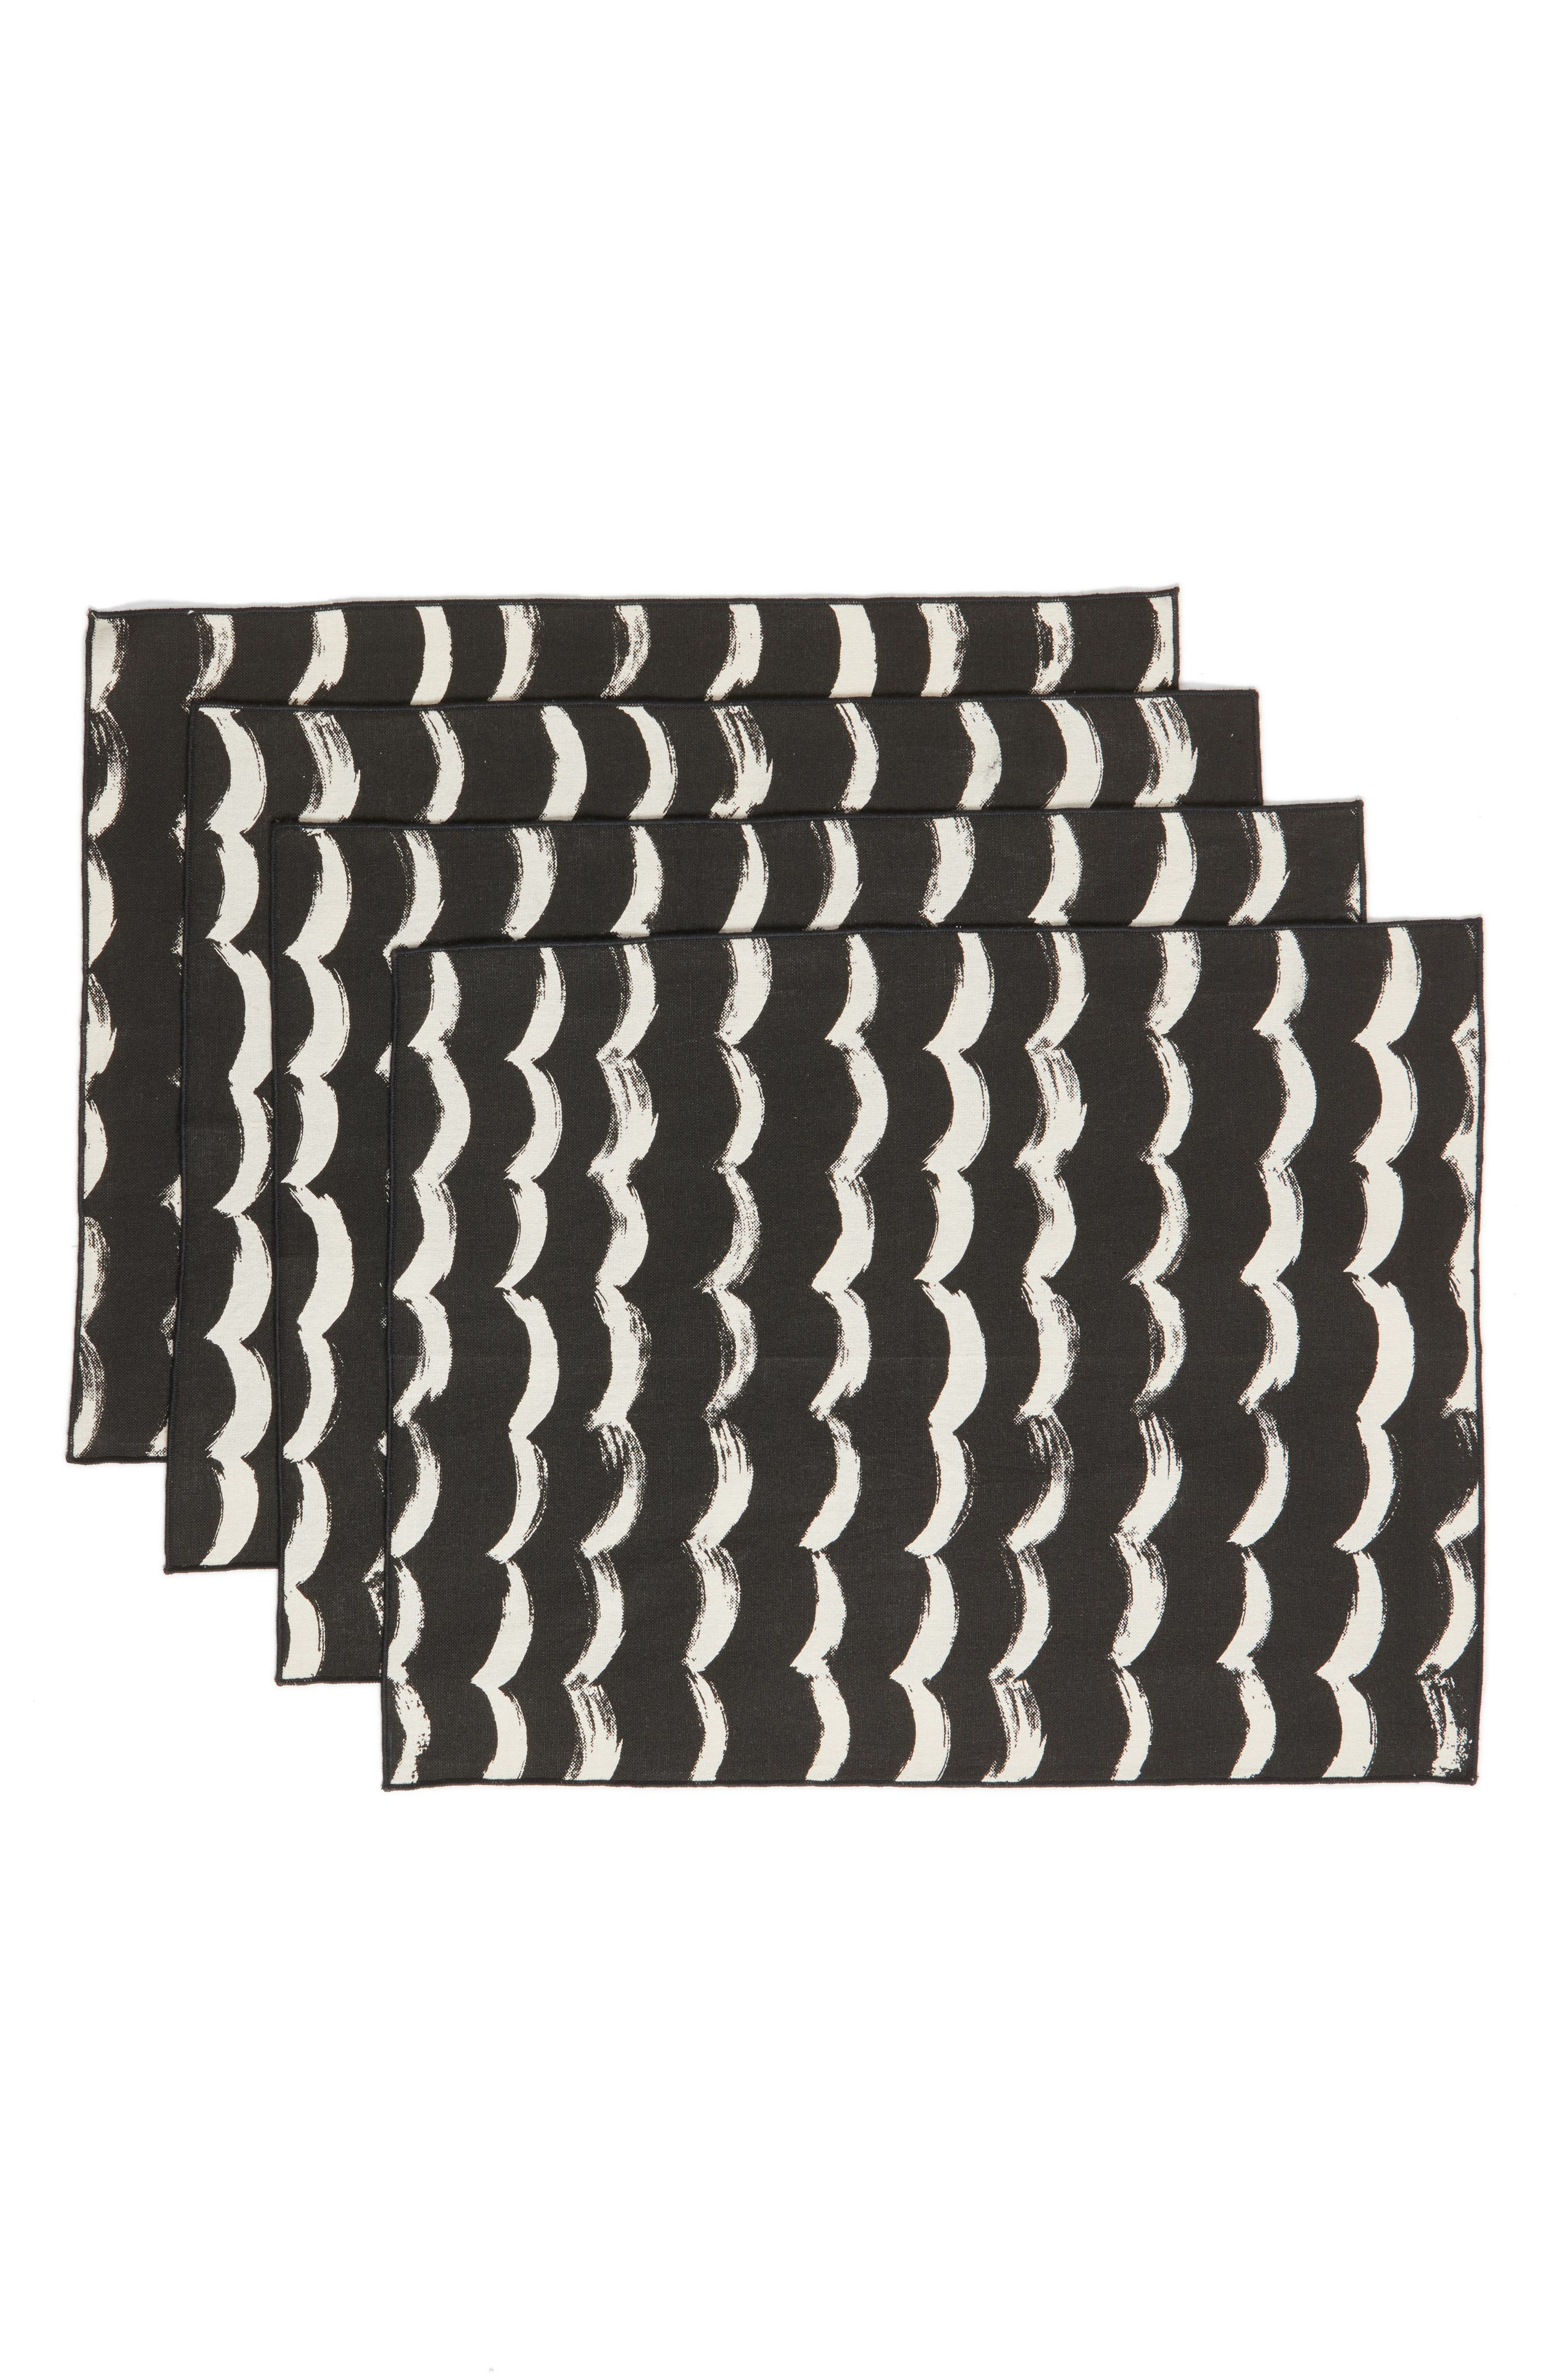 Minted Sketchy Scallops Set of 4 Cotton Placemats